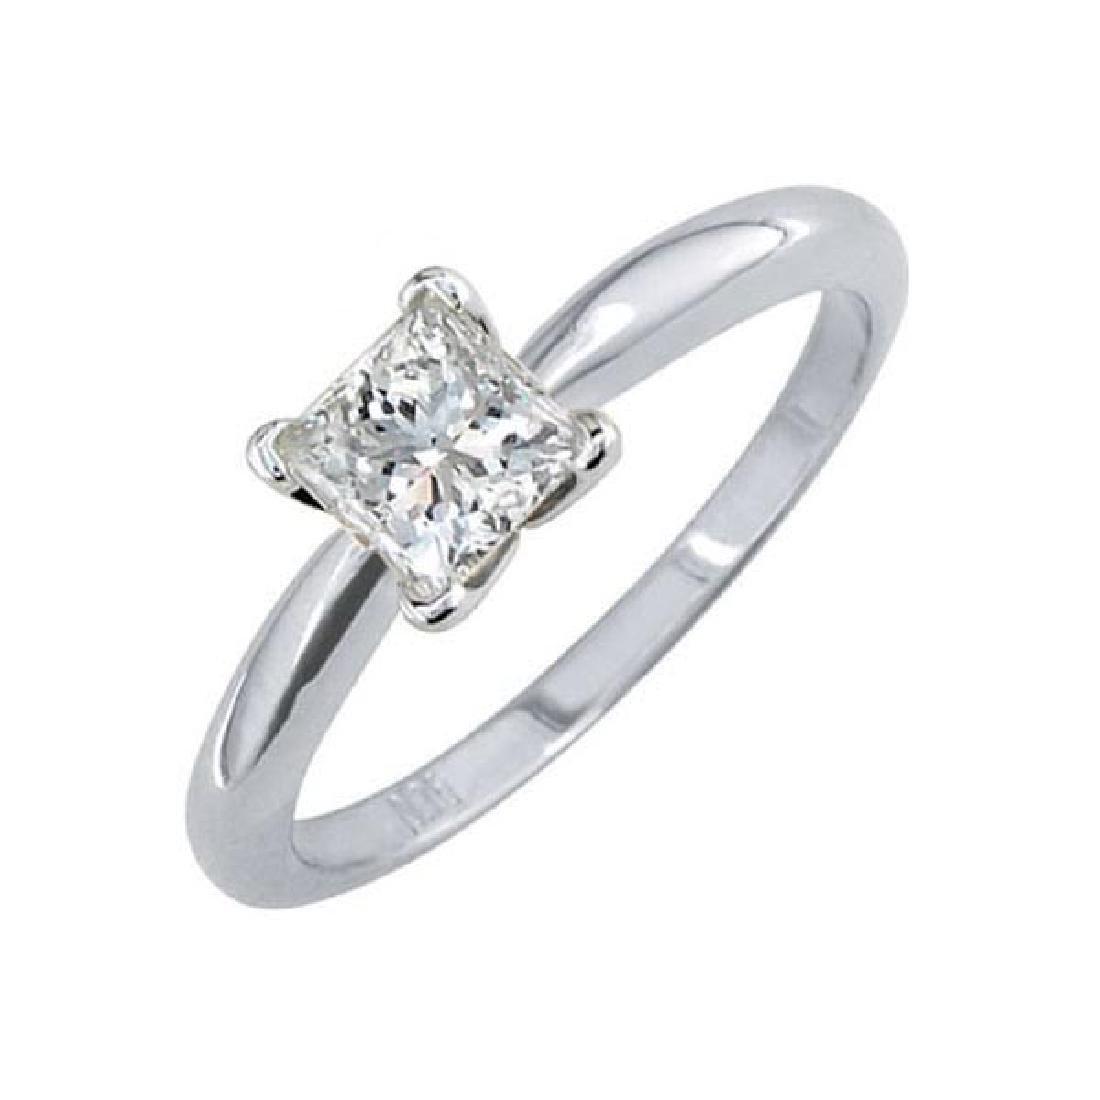 Certified 0.67 CTW Princess Diamond Solitaire 14k Ring